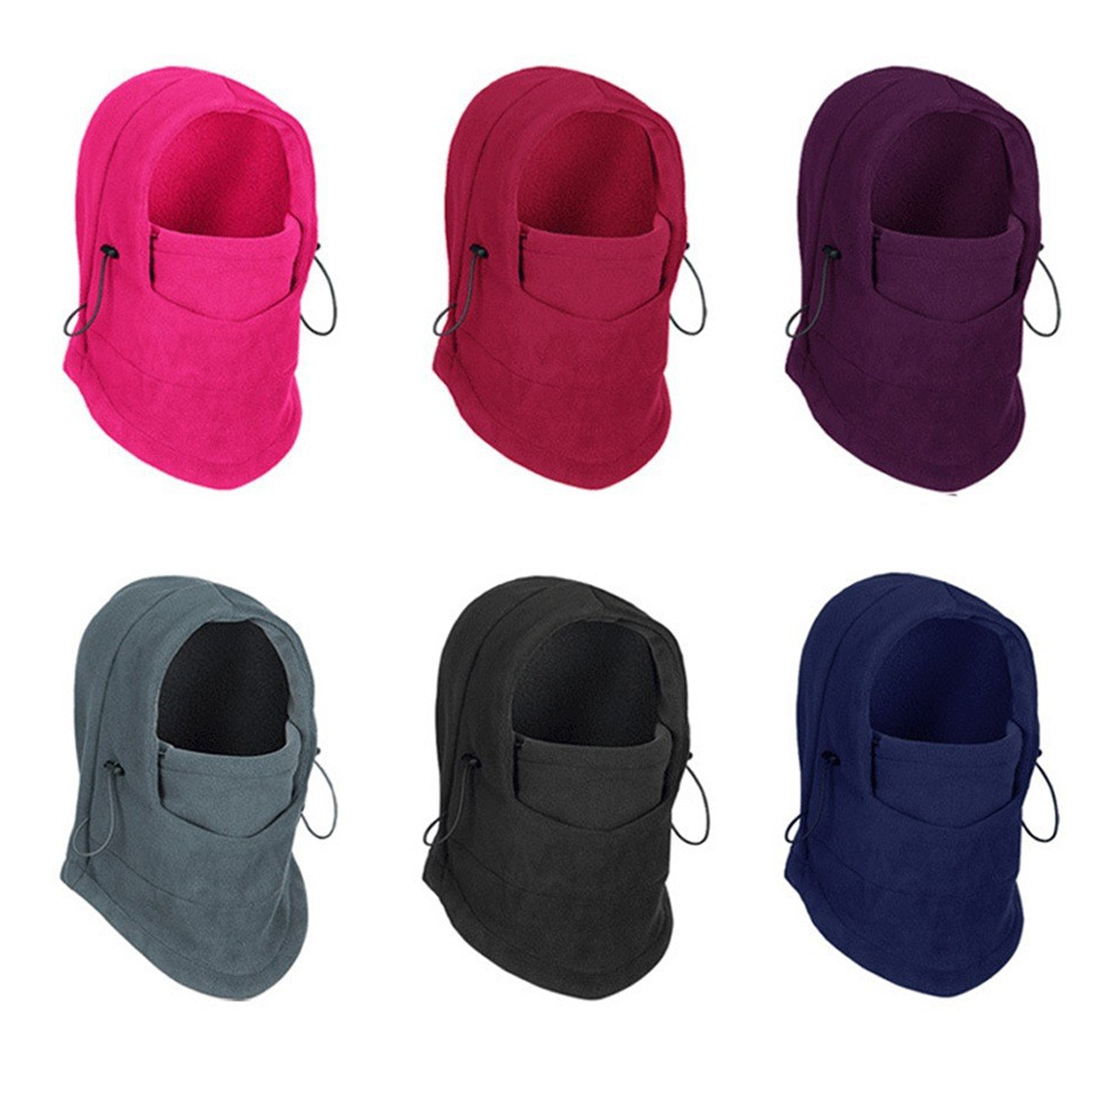 Winter Warm Fleece Hats For Bandana Neck Warmer Balaclava Snowboard Face Mask, Special Forces Mask Thicker Caps CAR-partment